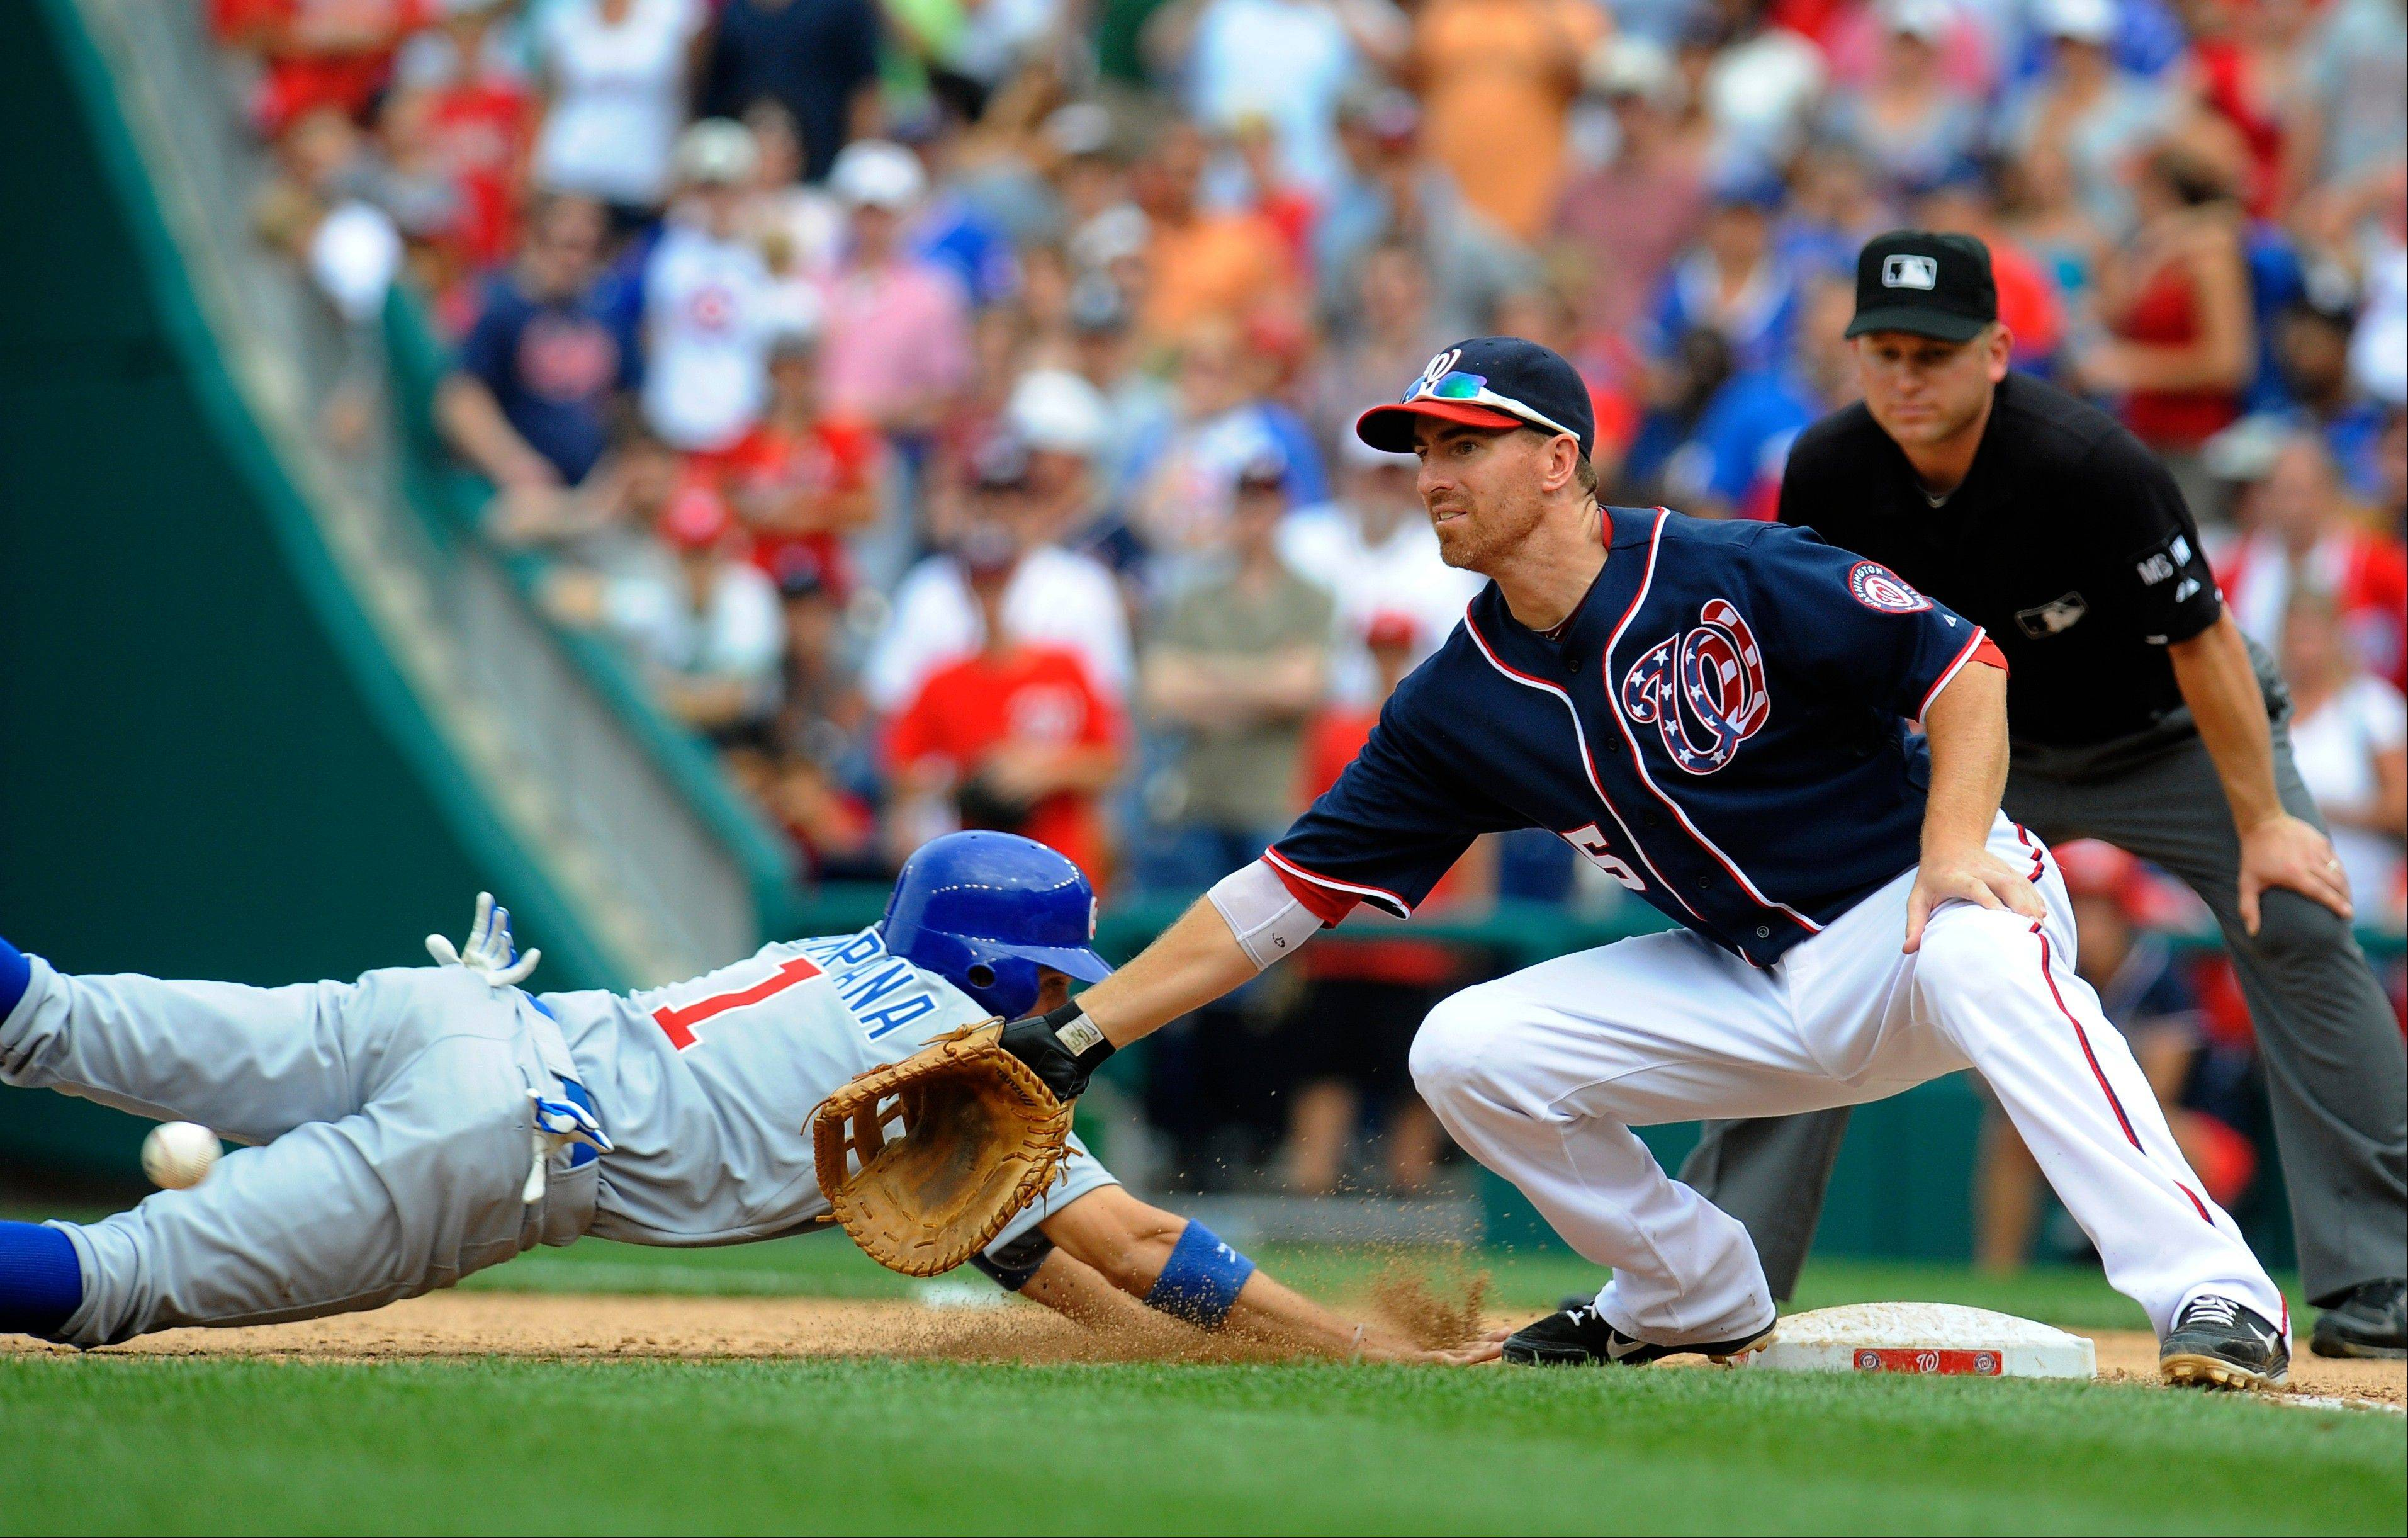 The Cubs' Tony Campana dives back to first base Monday as the Washington Nationals' Adam LaRoche tries to field a pick-off attempt by pitcher Tyler Clippard during the ninth inning at Nationals Park.